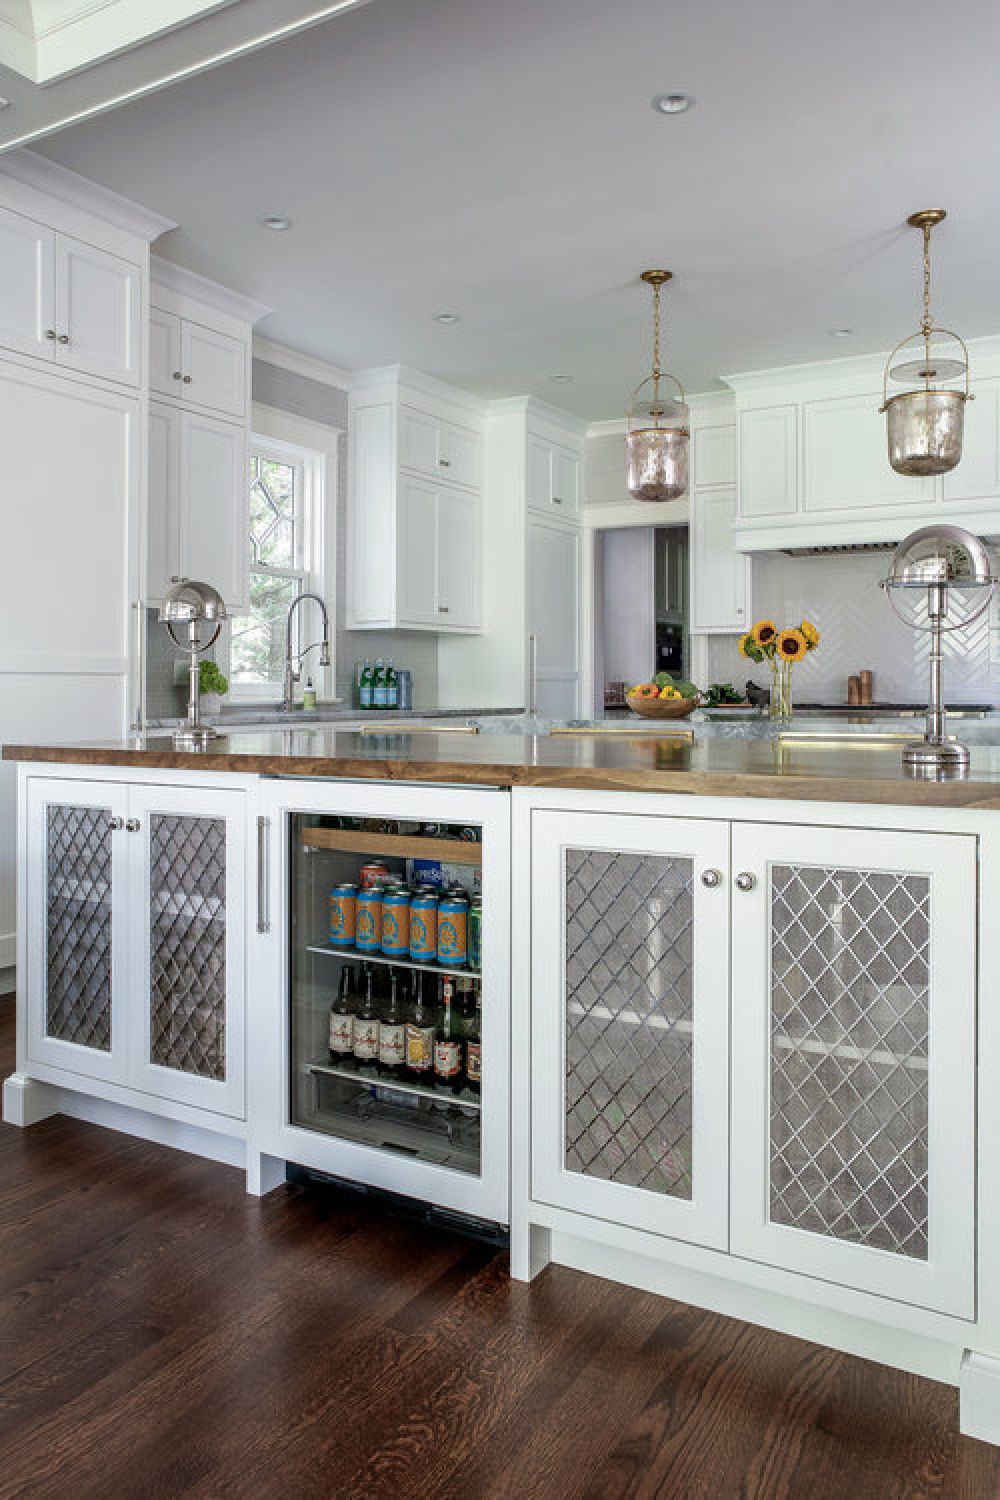 Beautiful classic style in a classic kitchen by Edward Deegan with white Shaker cabinets.